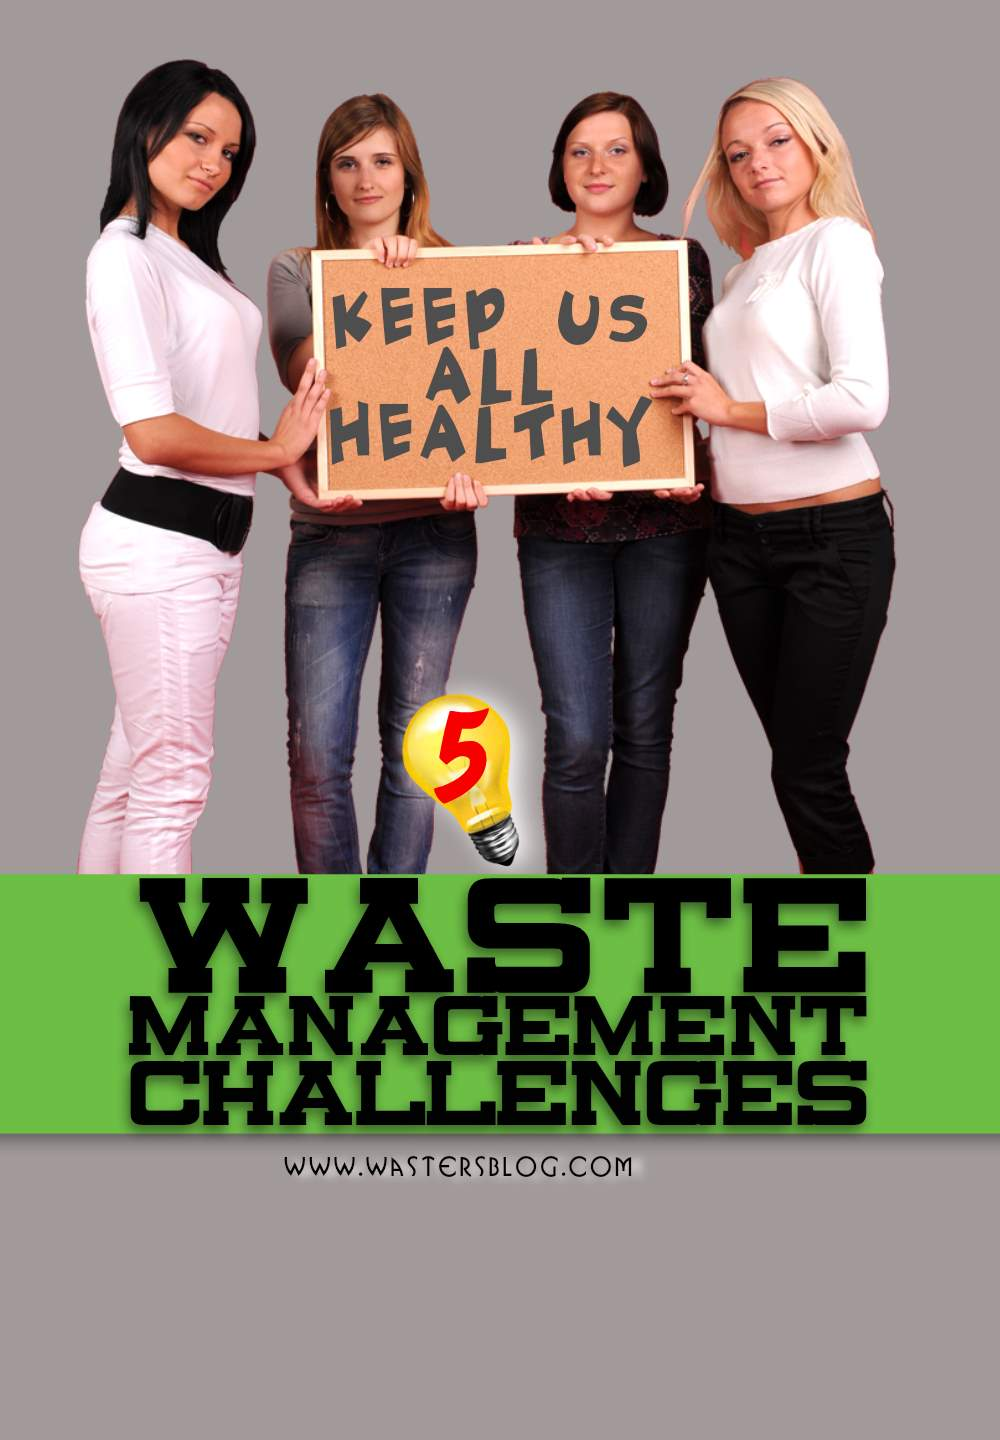 Image is the Waste Management Article Image.